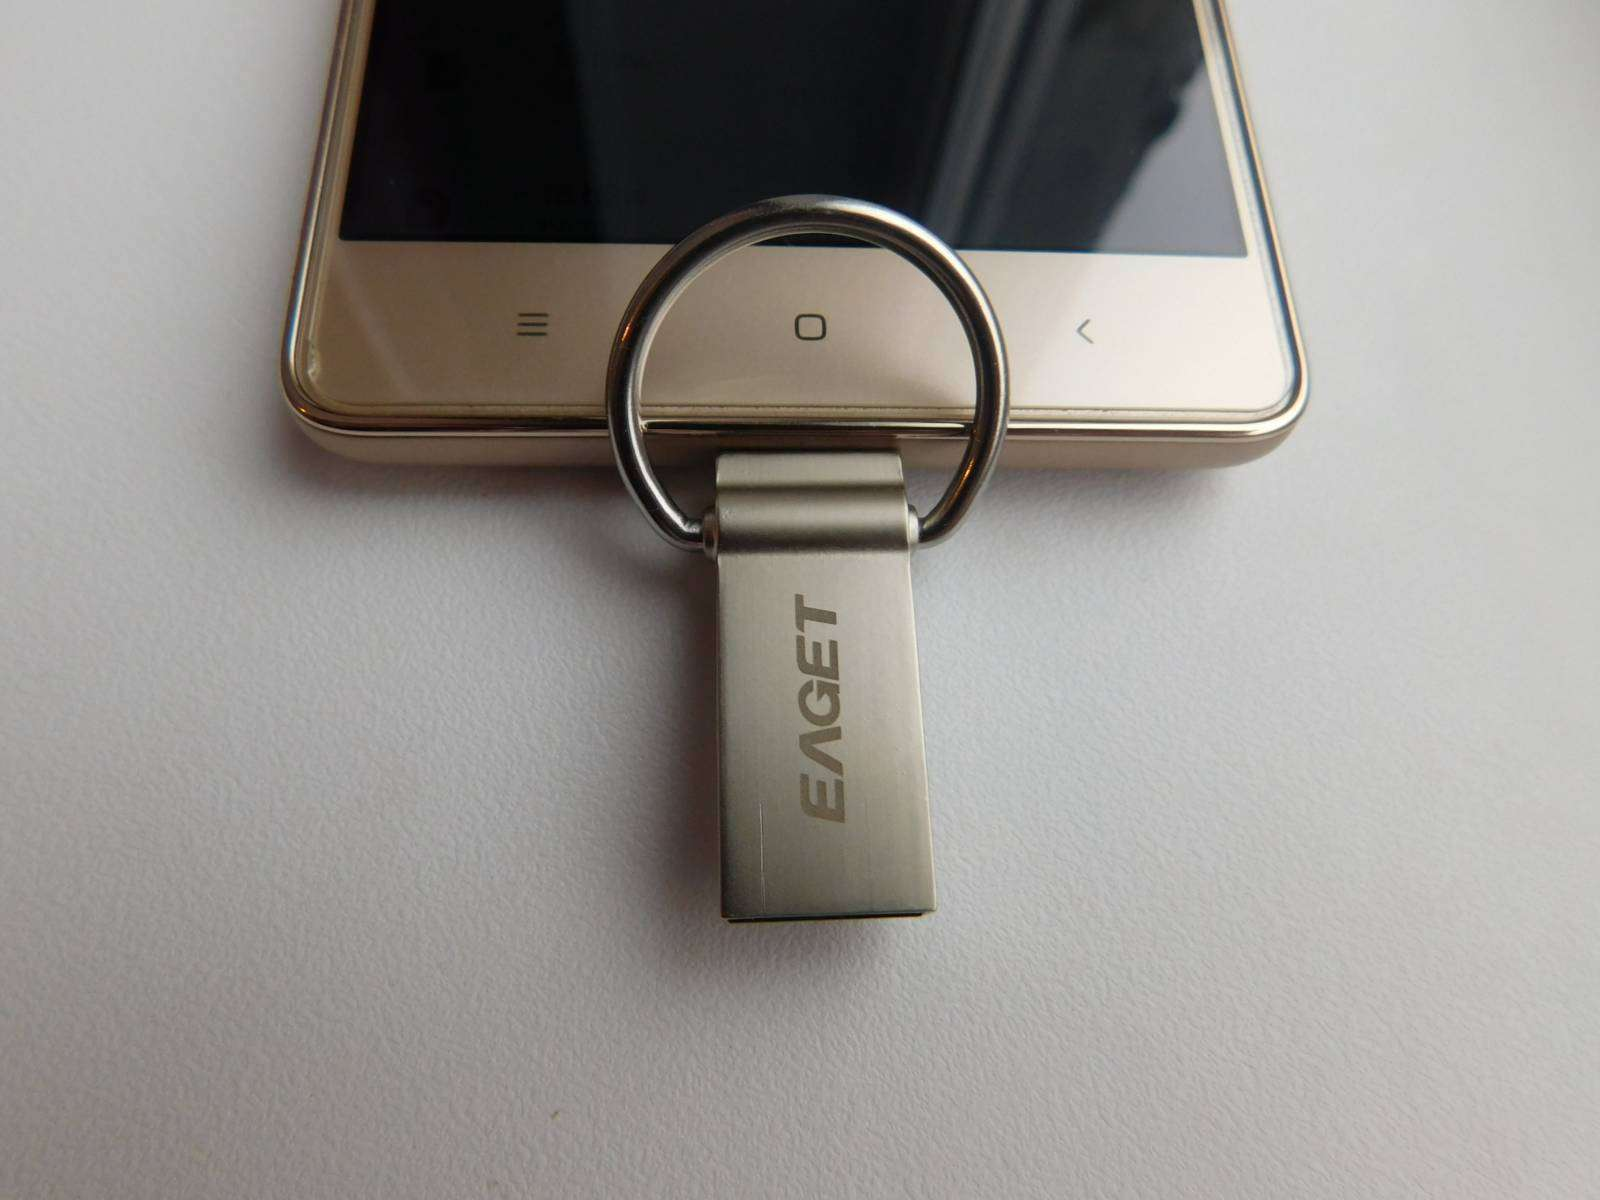 Banggood: EAGET V90 Ultra Mini USB Flash Drive USB 3.0 OTG